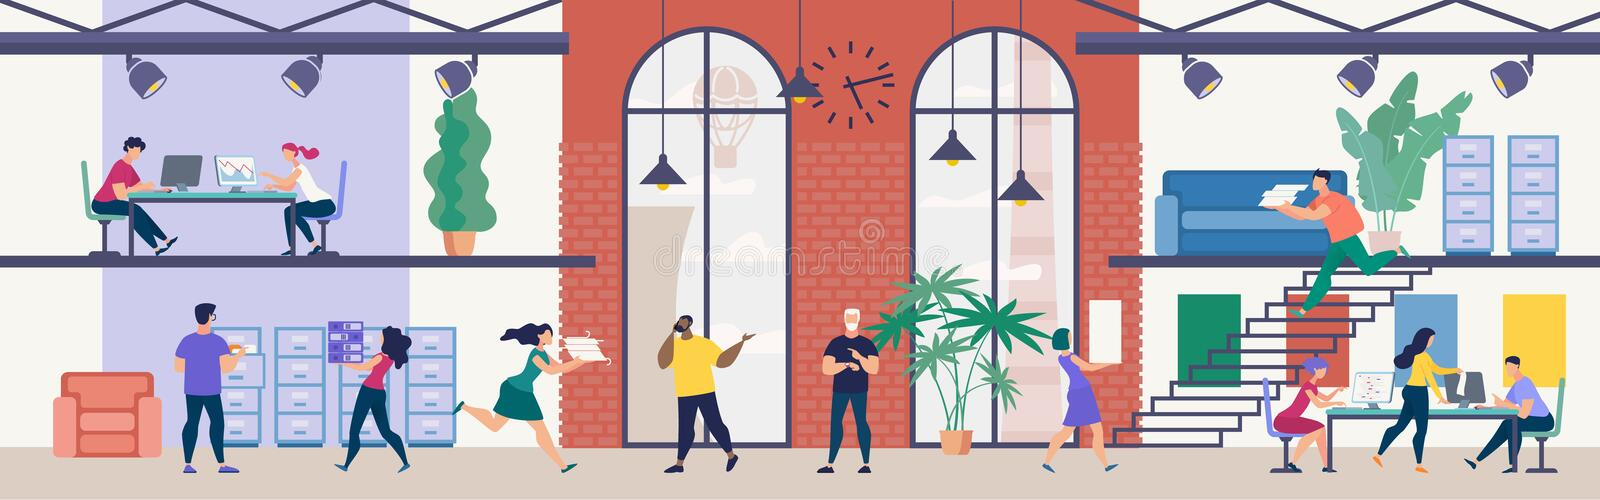 Company Employees Working in Office Flat Vector royalty free illustration